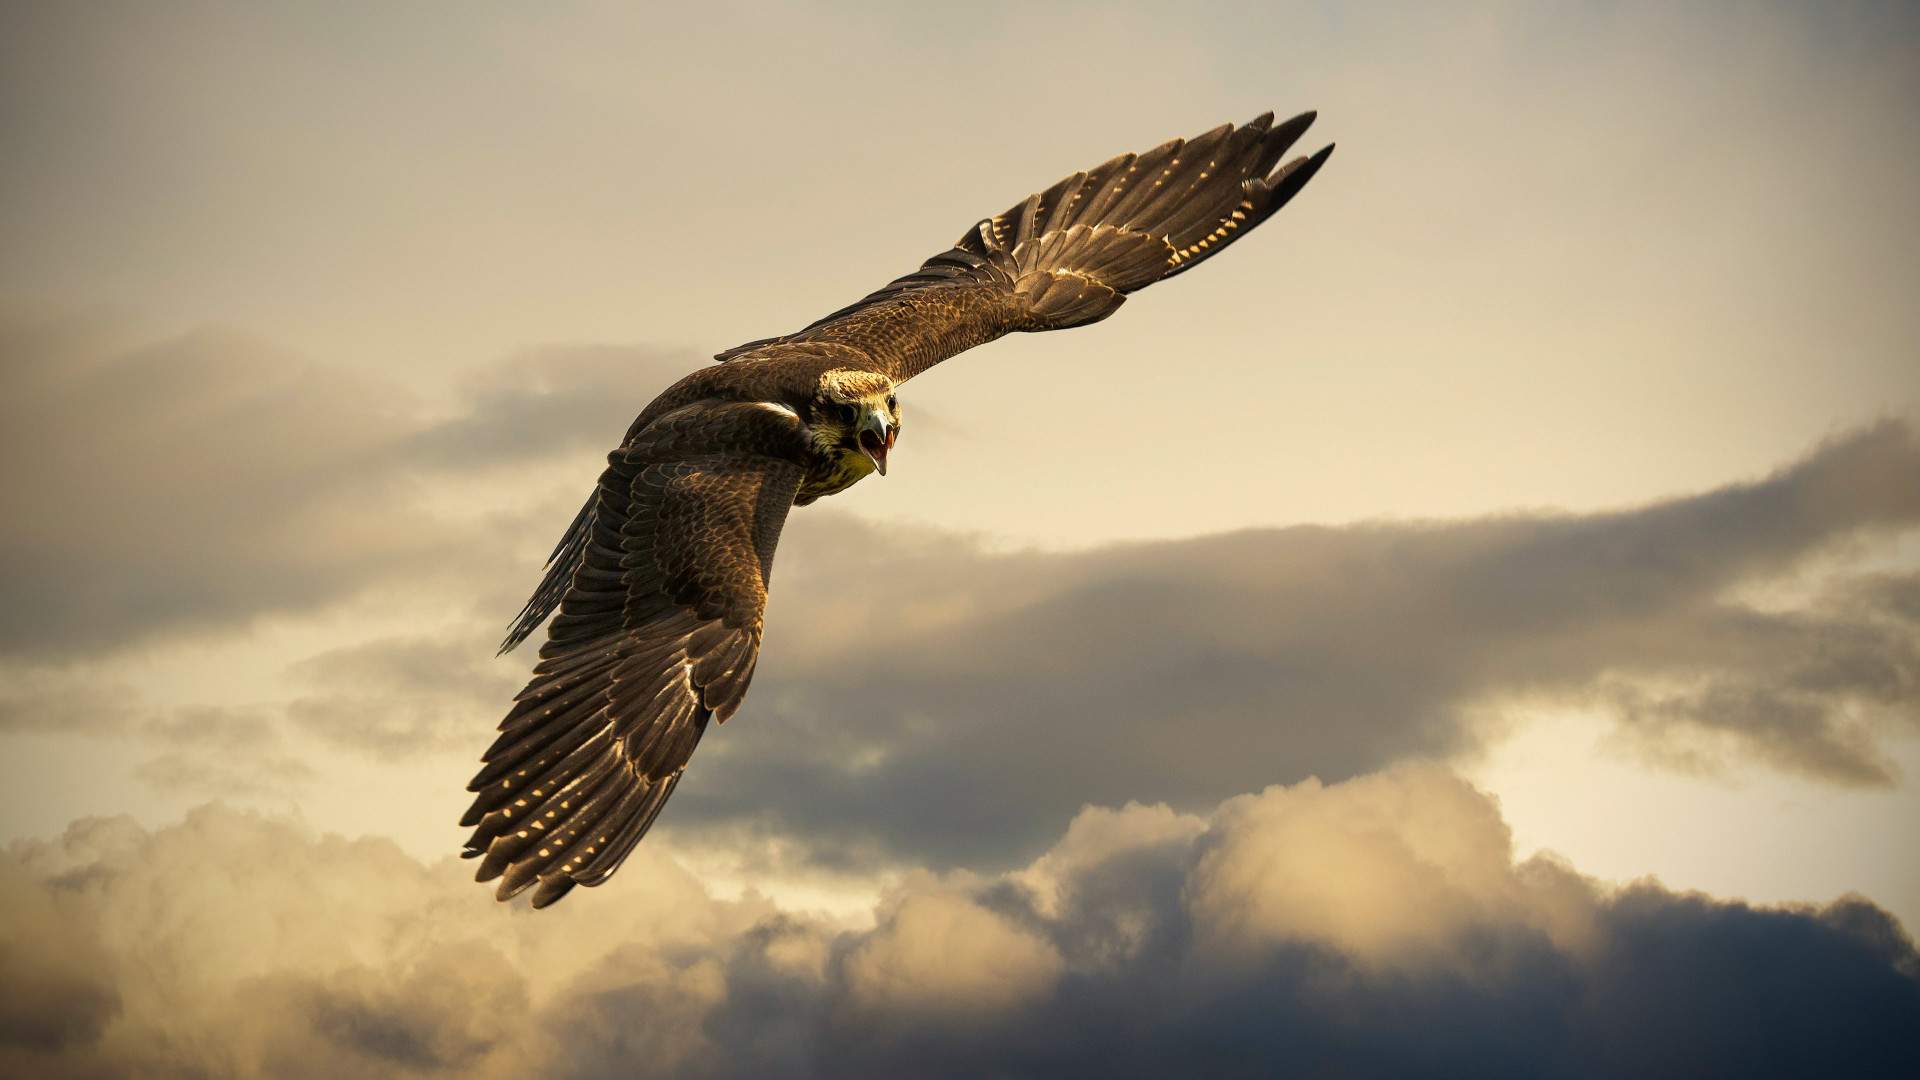 Flying hawk wallpaper 1920x1080